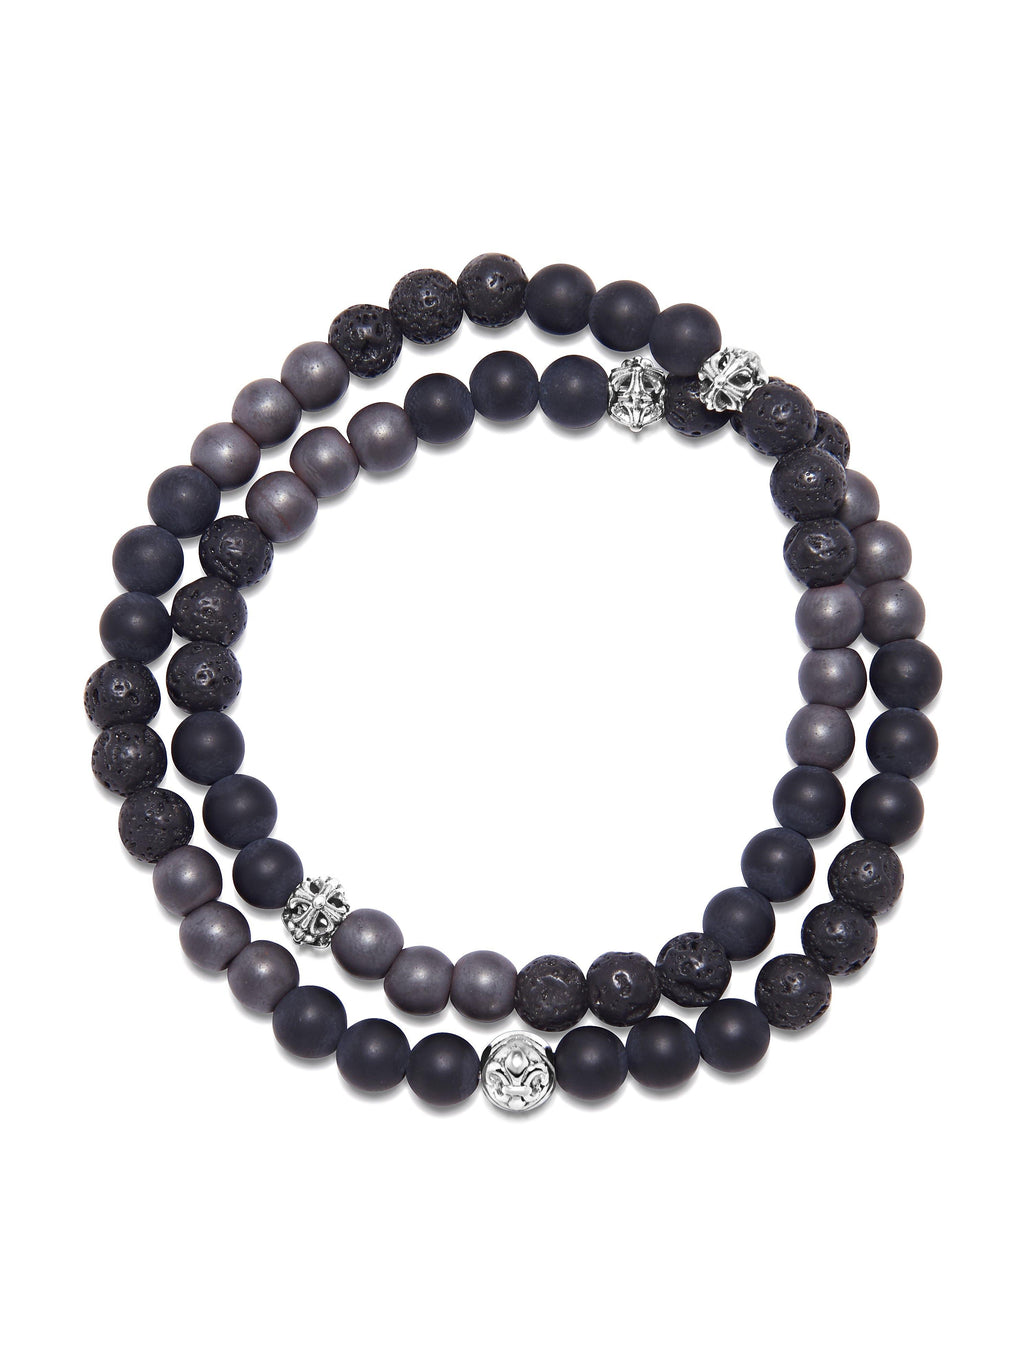 Men's Wrap-Around Bracelet with Matte Onyx, Hematite and Lava Stone